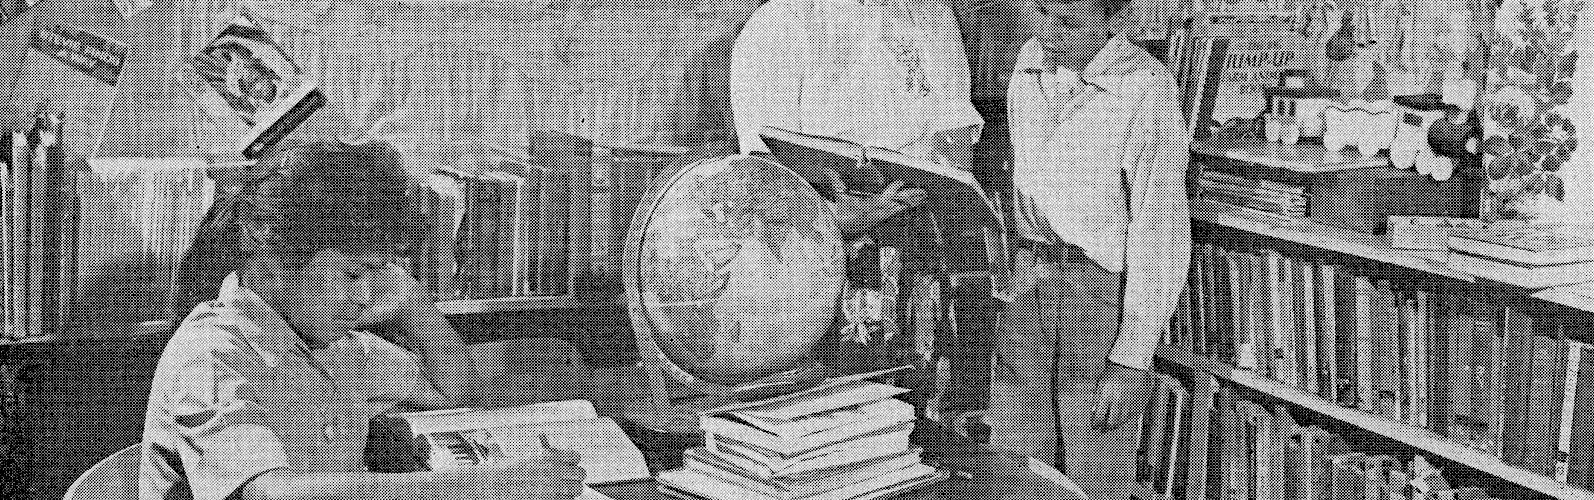 Image of students in a library with a teacher